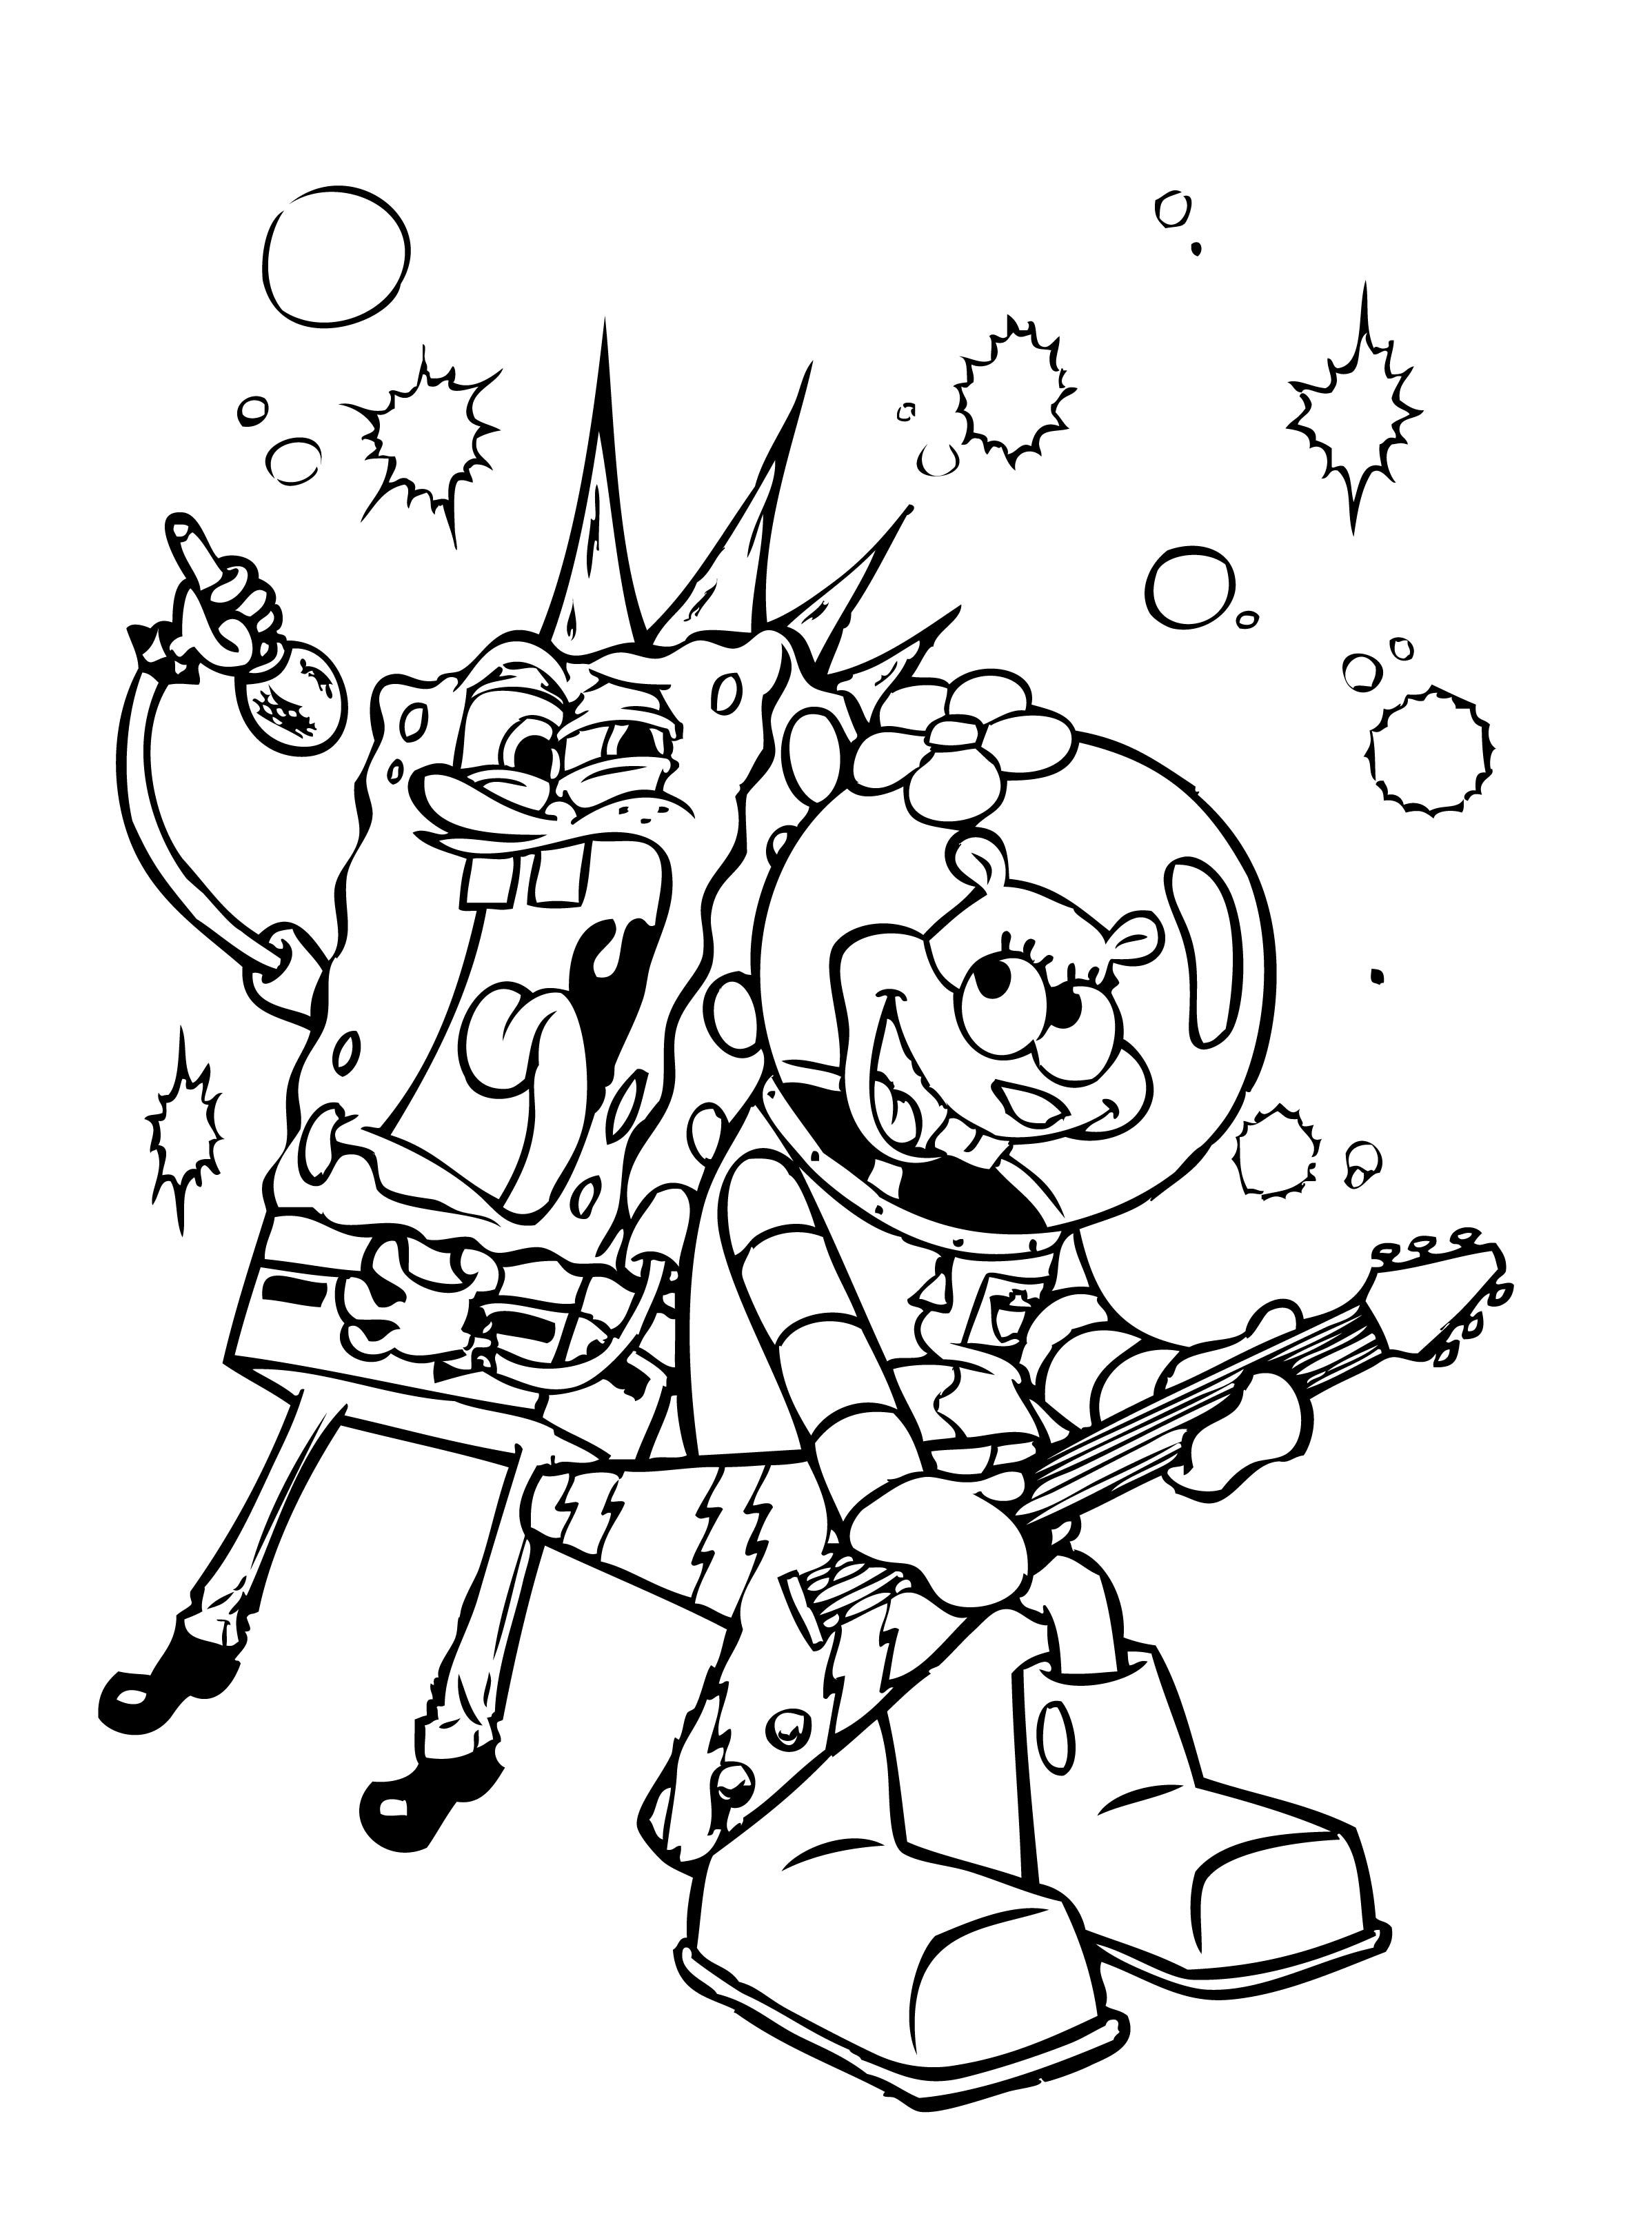 Printable coloring pages spongebob - Spongebob Sing Coloring Pages Hd Wallpaper Spongebob Pictures To